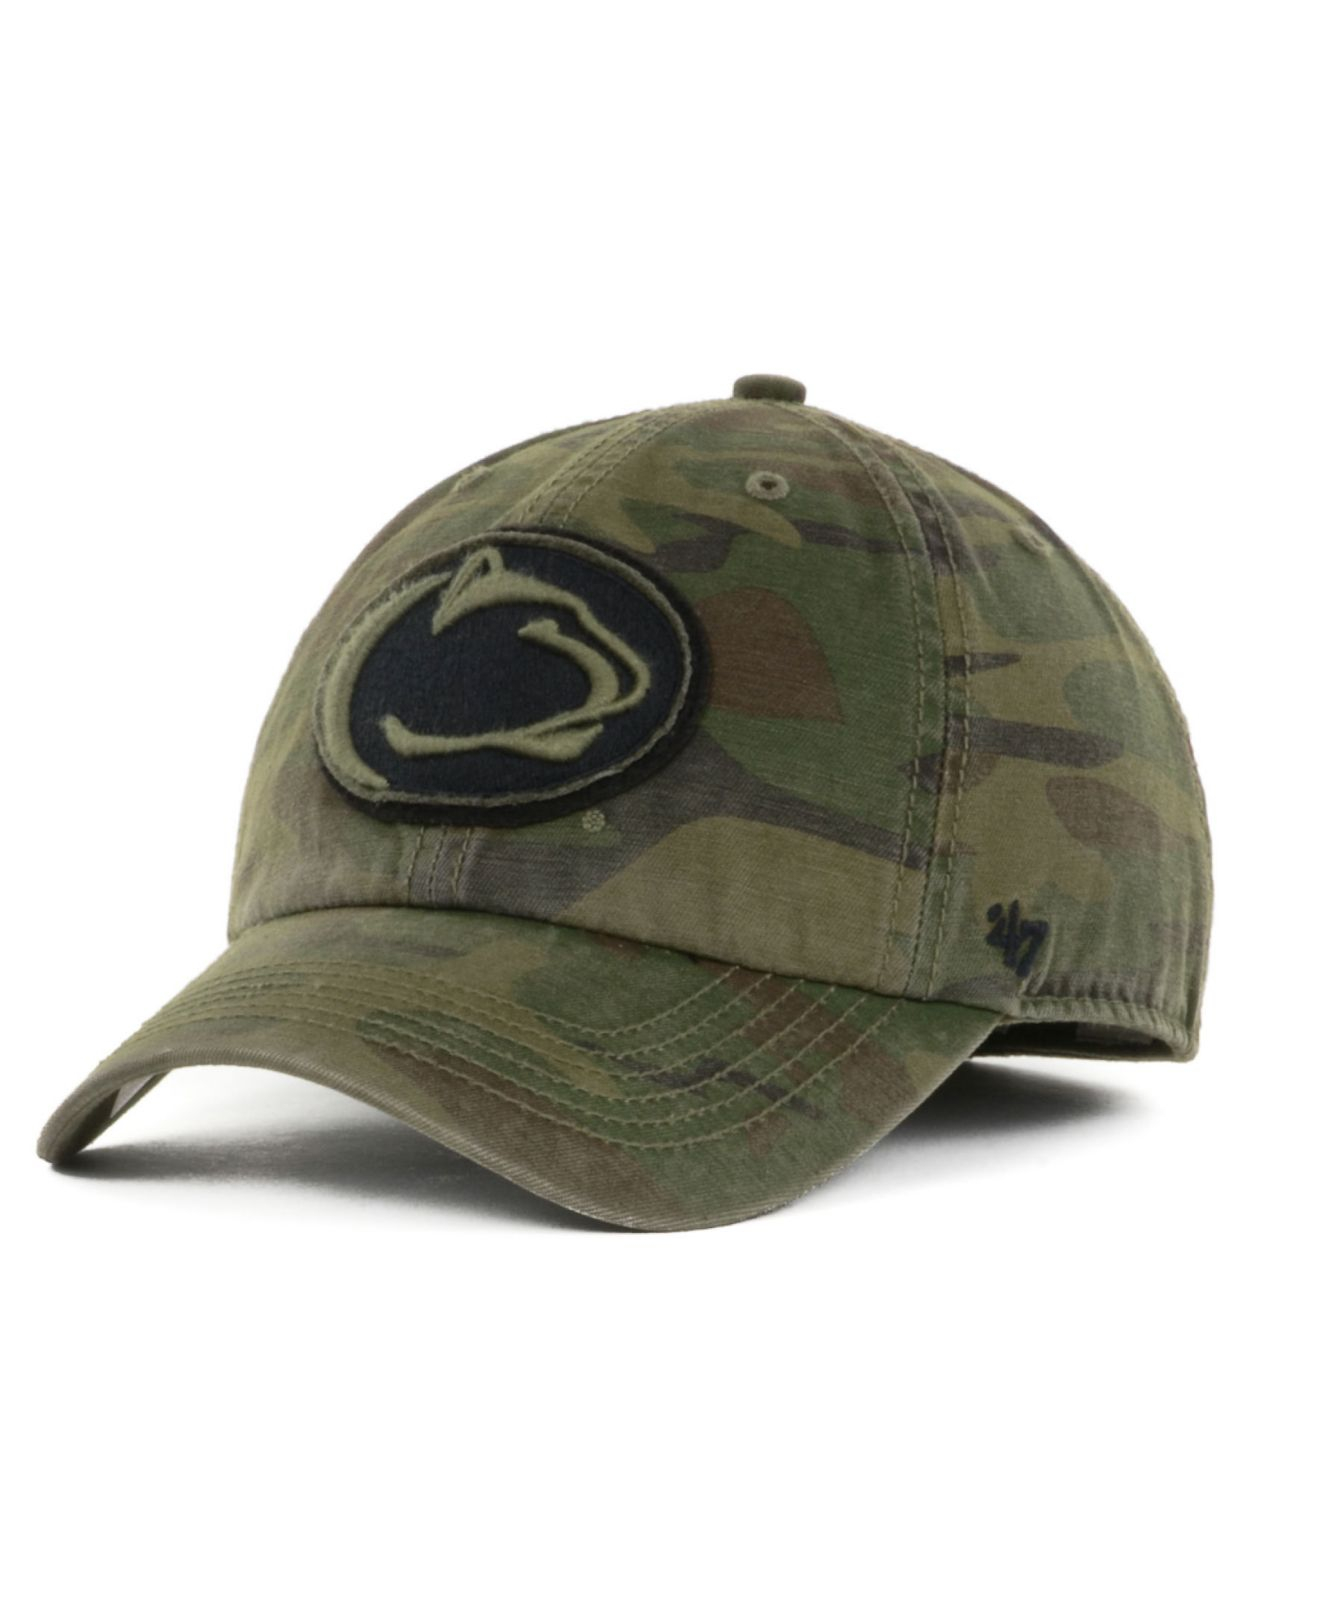 ... adjustable hat realtree camo c8686 b88a8  usa lyst 47 brand penn state  nittany lions movement franchise cap in a37c6 5d05e cfd193eef6b7